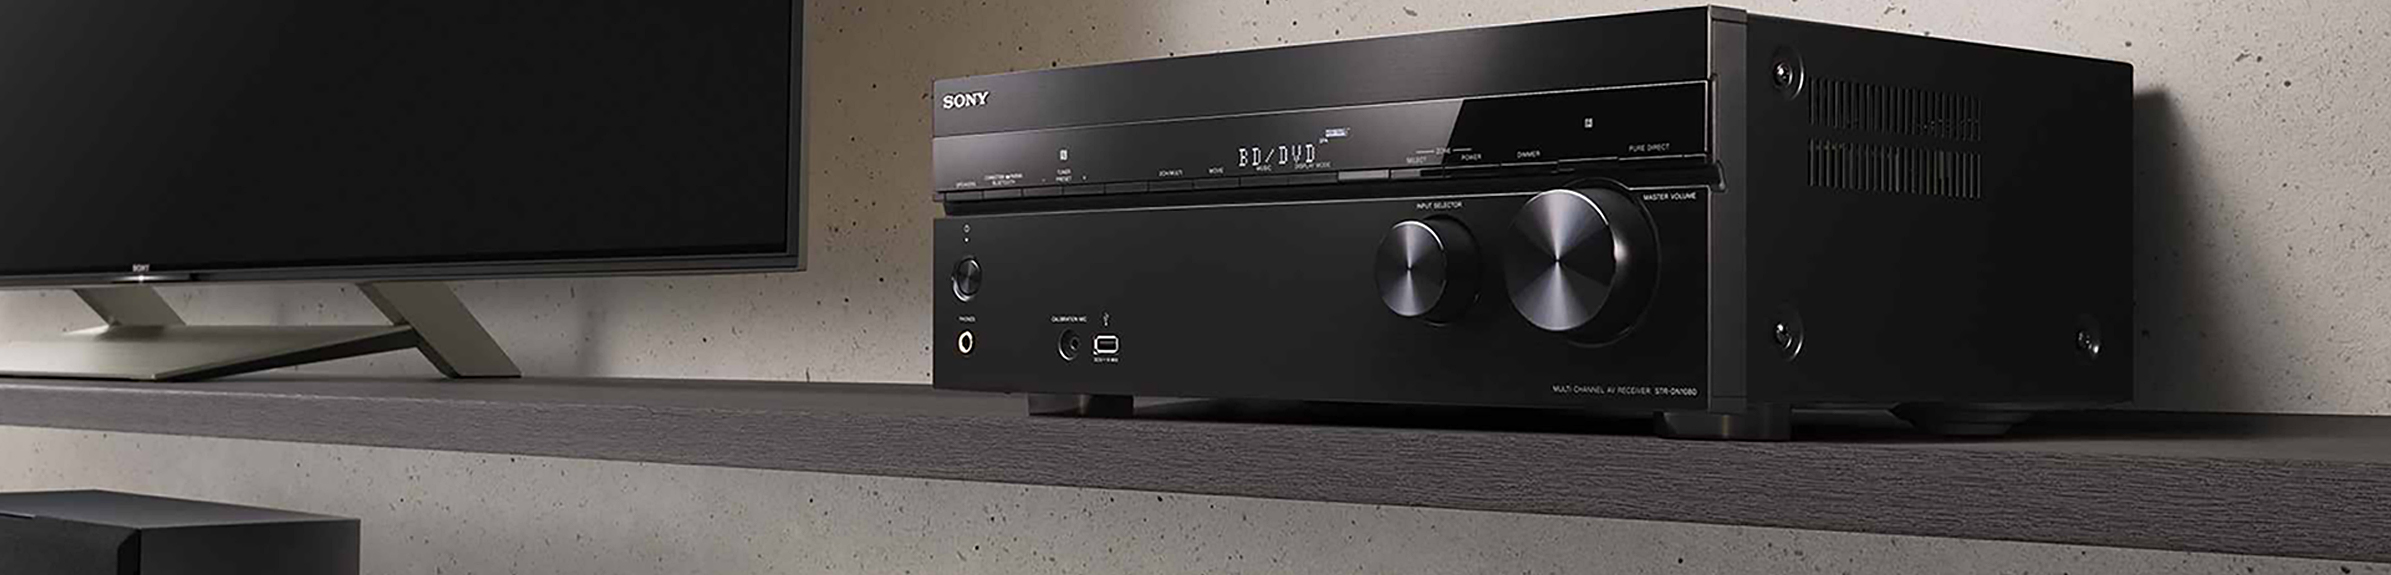 Best AV Receivers of 2019 - Sub-$600 Home Theater Receivers Ranked